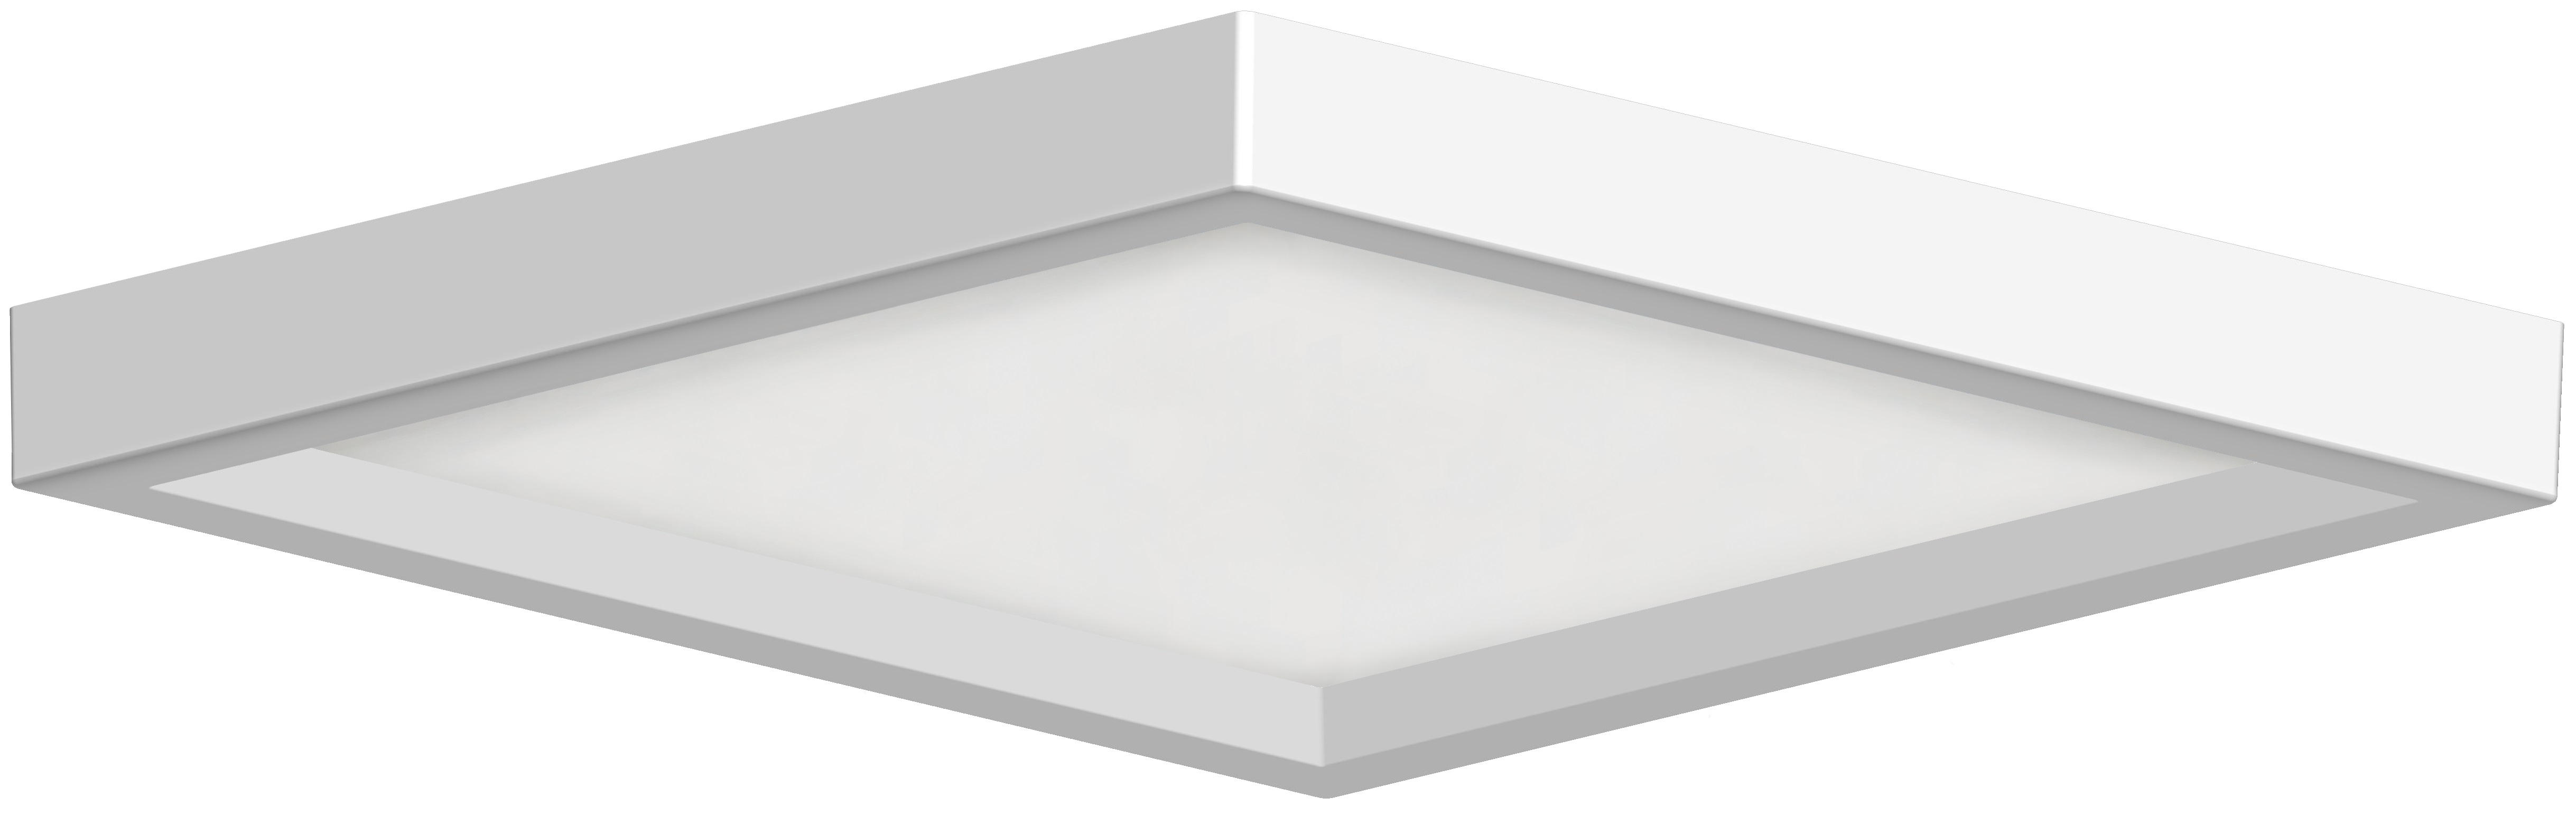 6 Low Profile Square Ceiling Mount Rp Lighting Fans